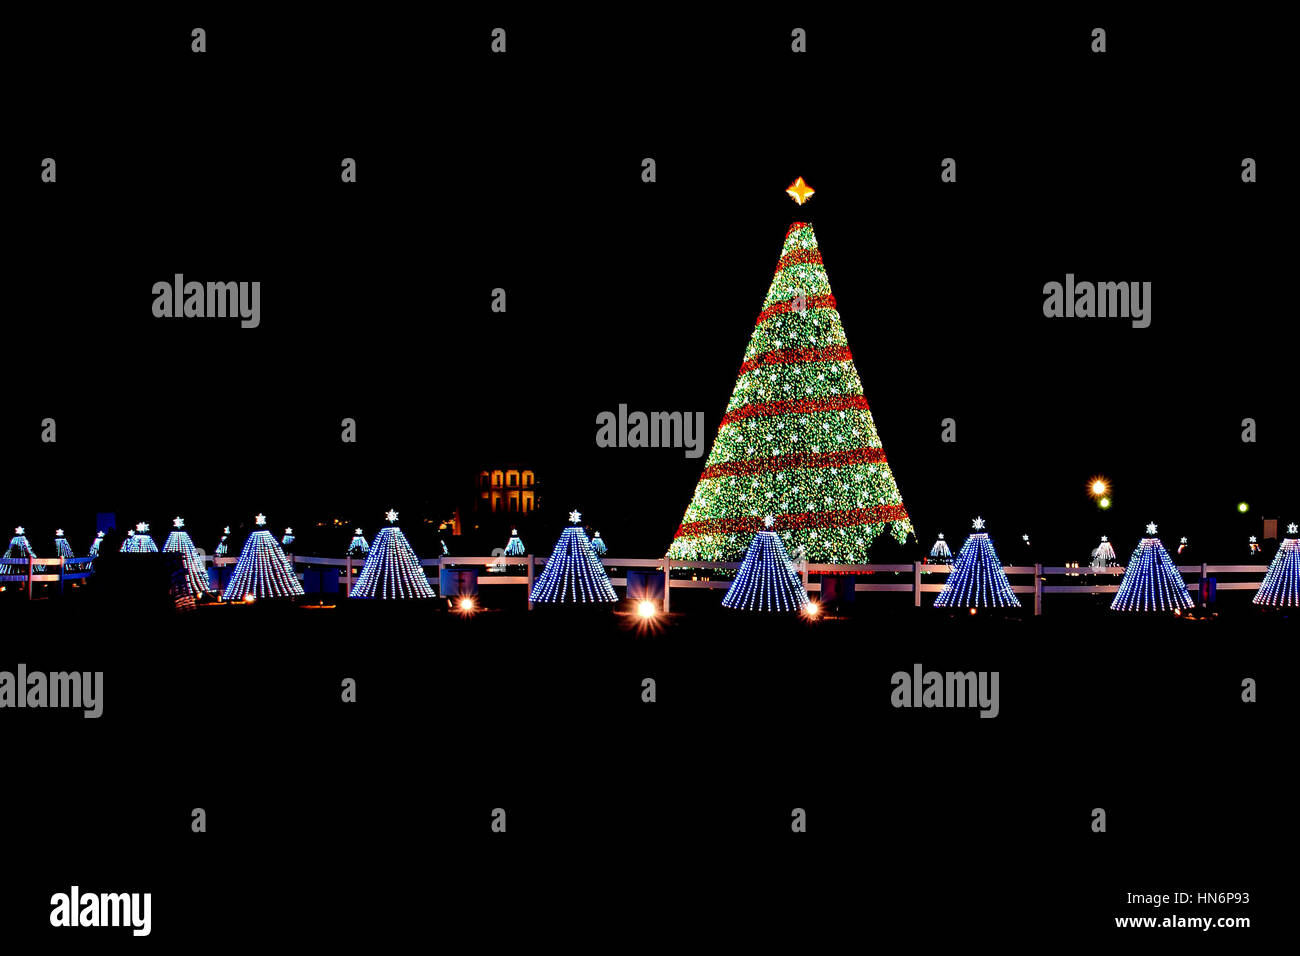 illuminated christmas tree lights at night with 50 small trees representing each state at national mall in washington dc in 2014